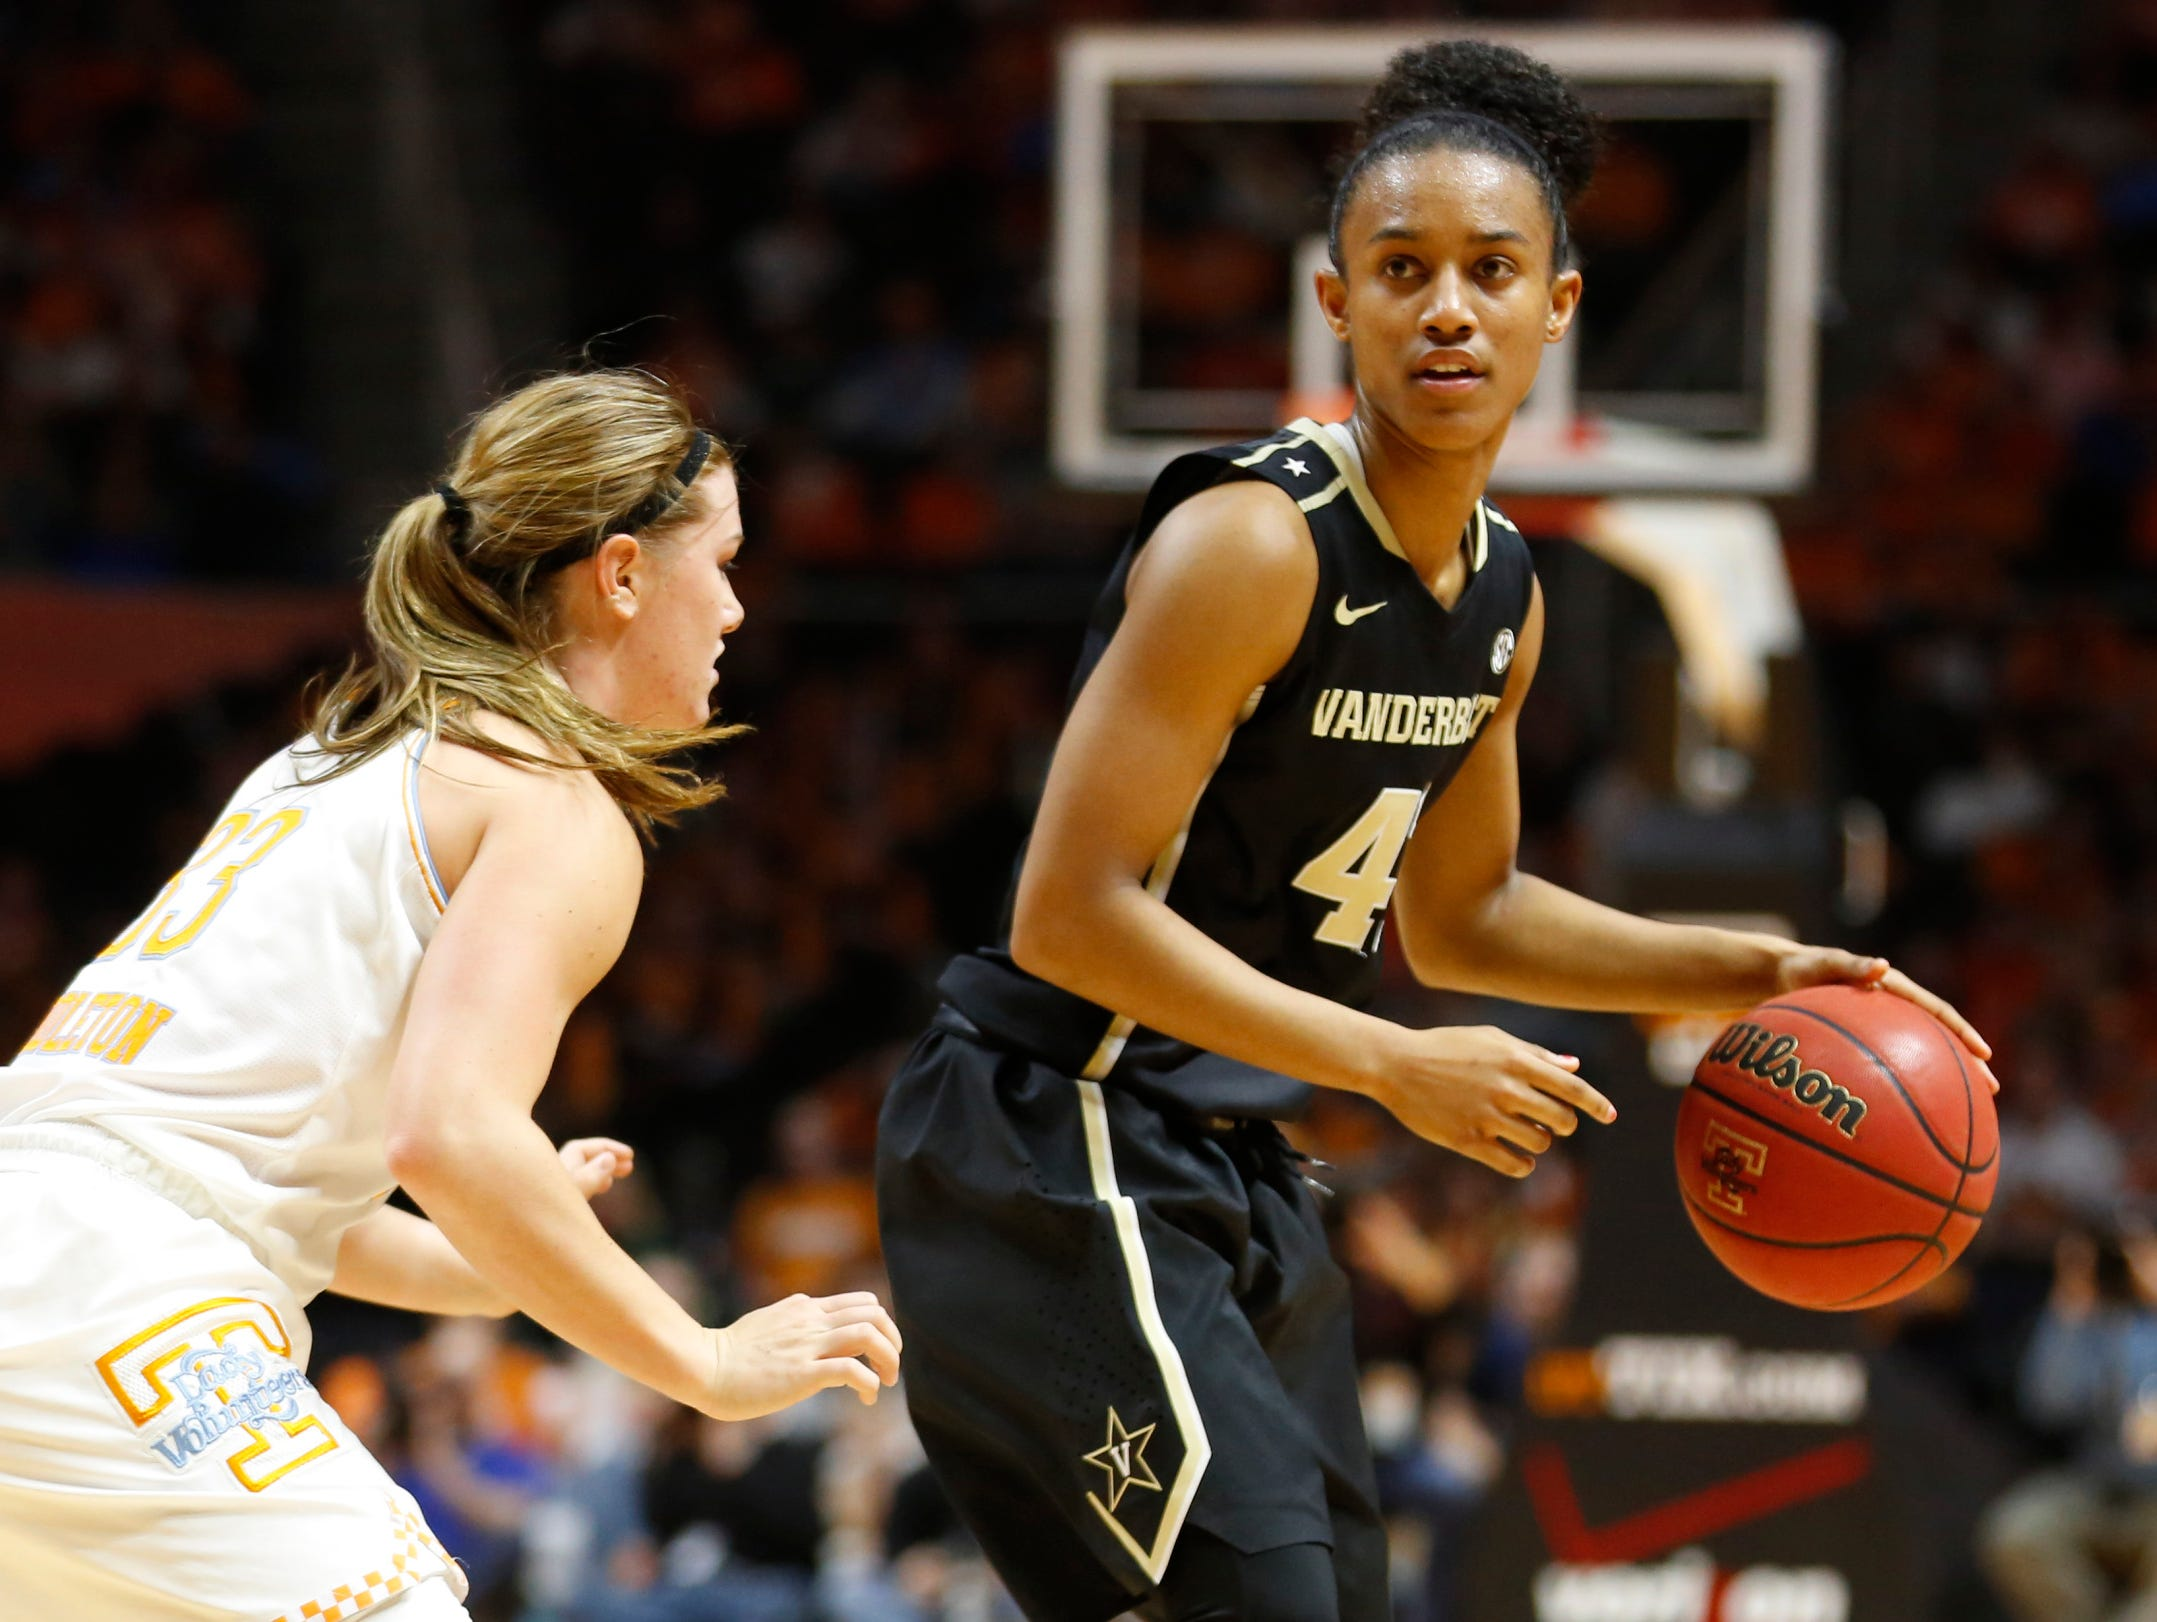 Vanderbilt dropped its regular season finale to No. 6 Tennessee 79-49 at Thompson-Boling Arena in Knoxville, TN on March 1, 2015. Photo by Steven Bridges